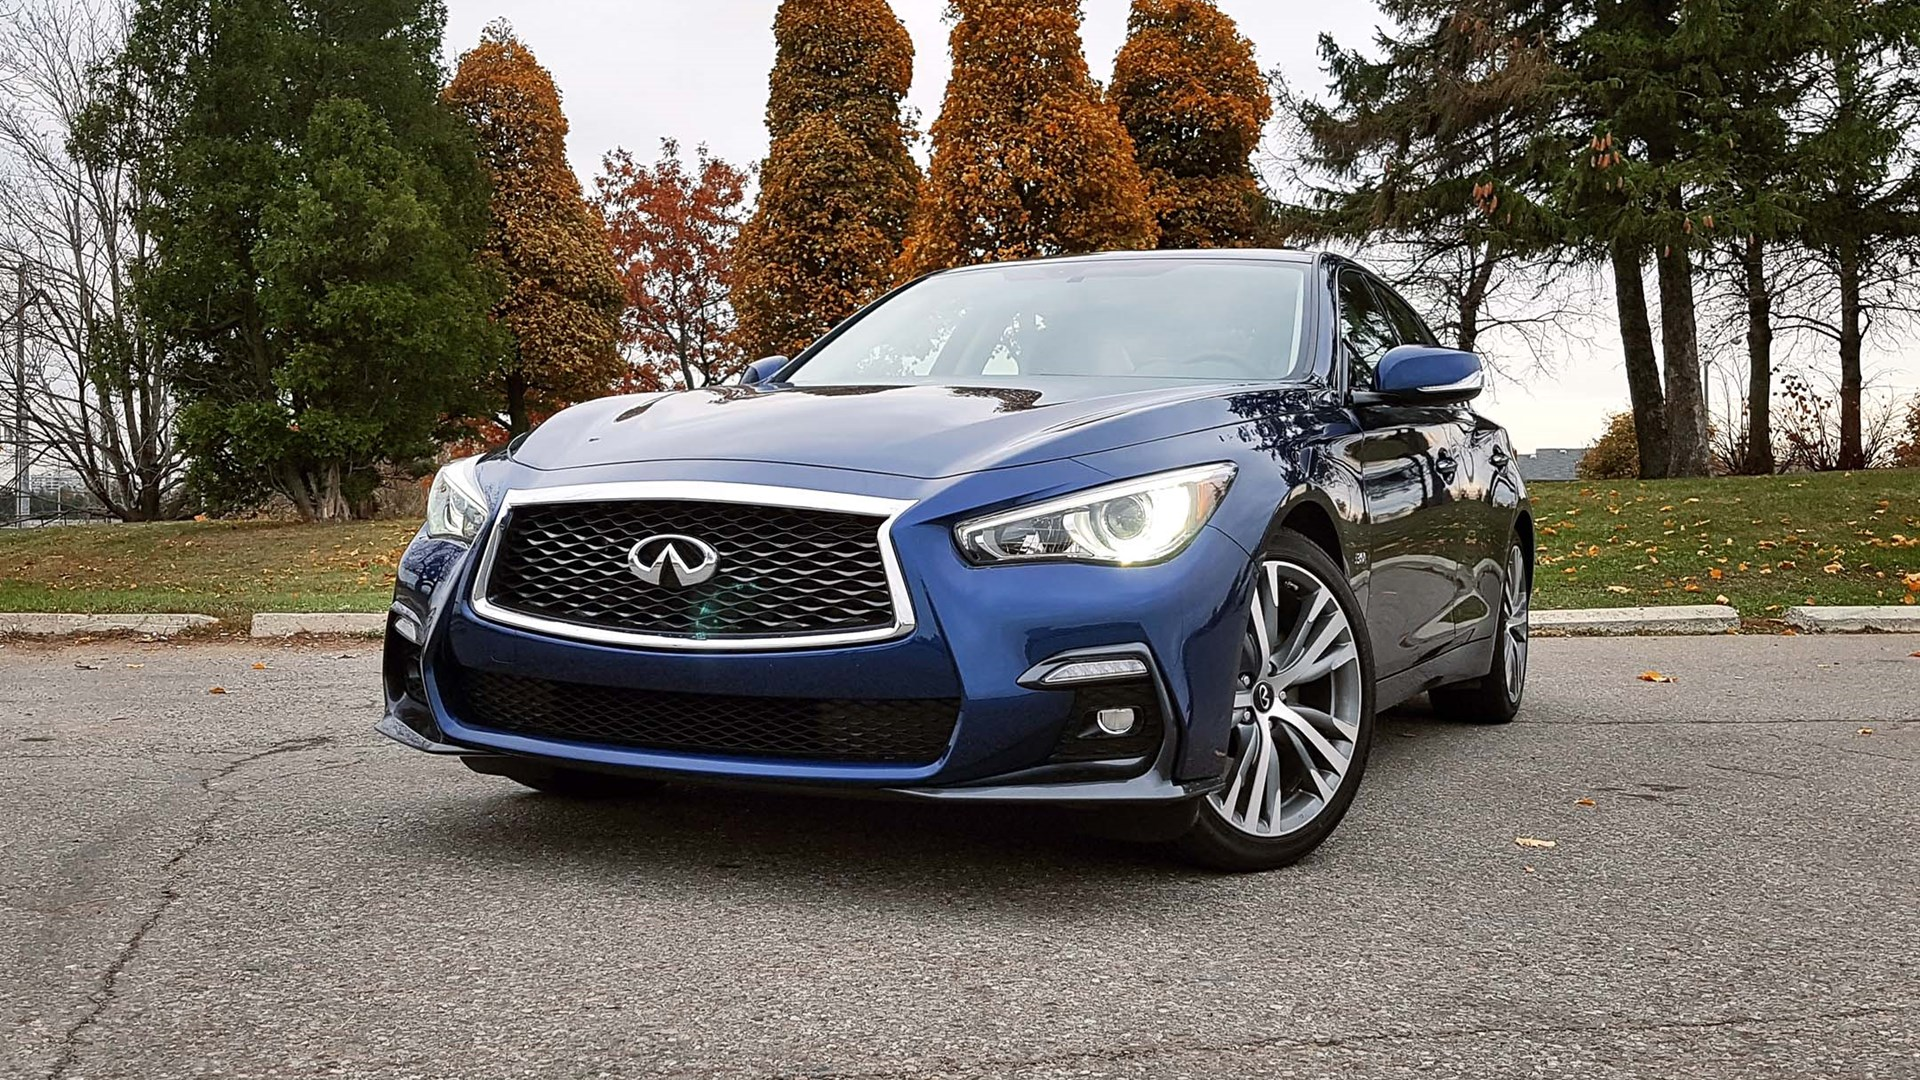 2014 2018 Infiniti Q50 Used Vehicle Review